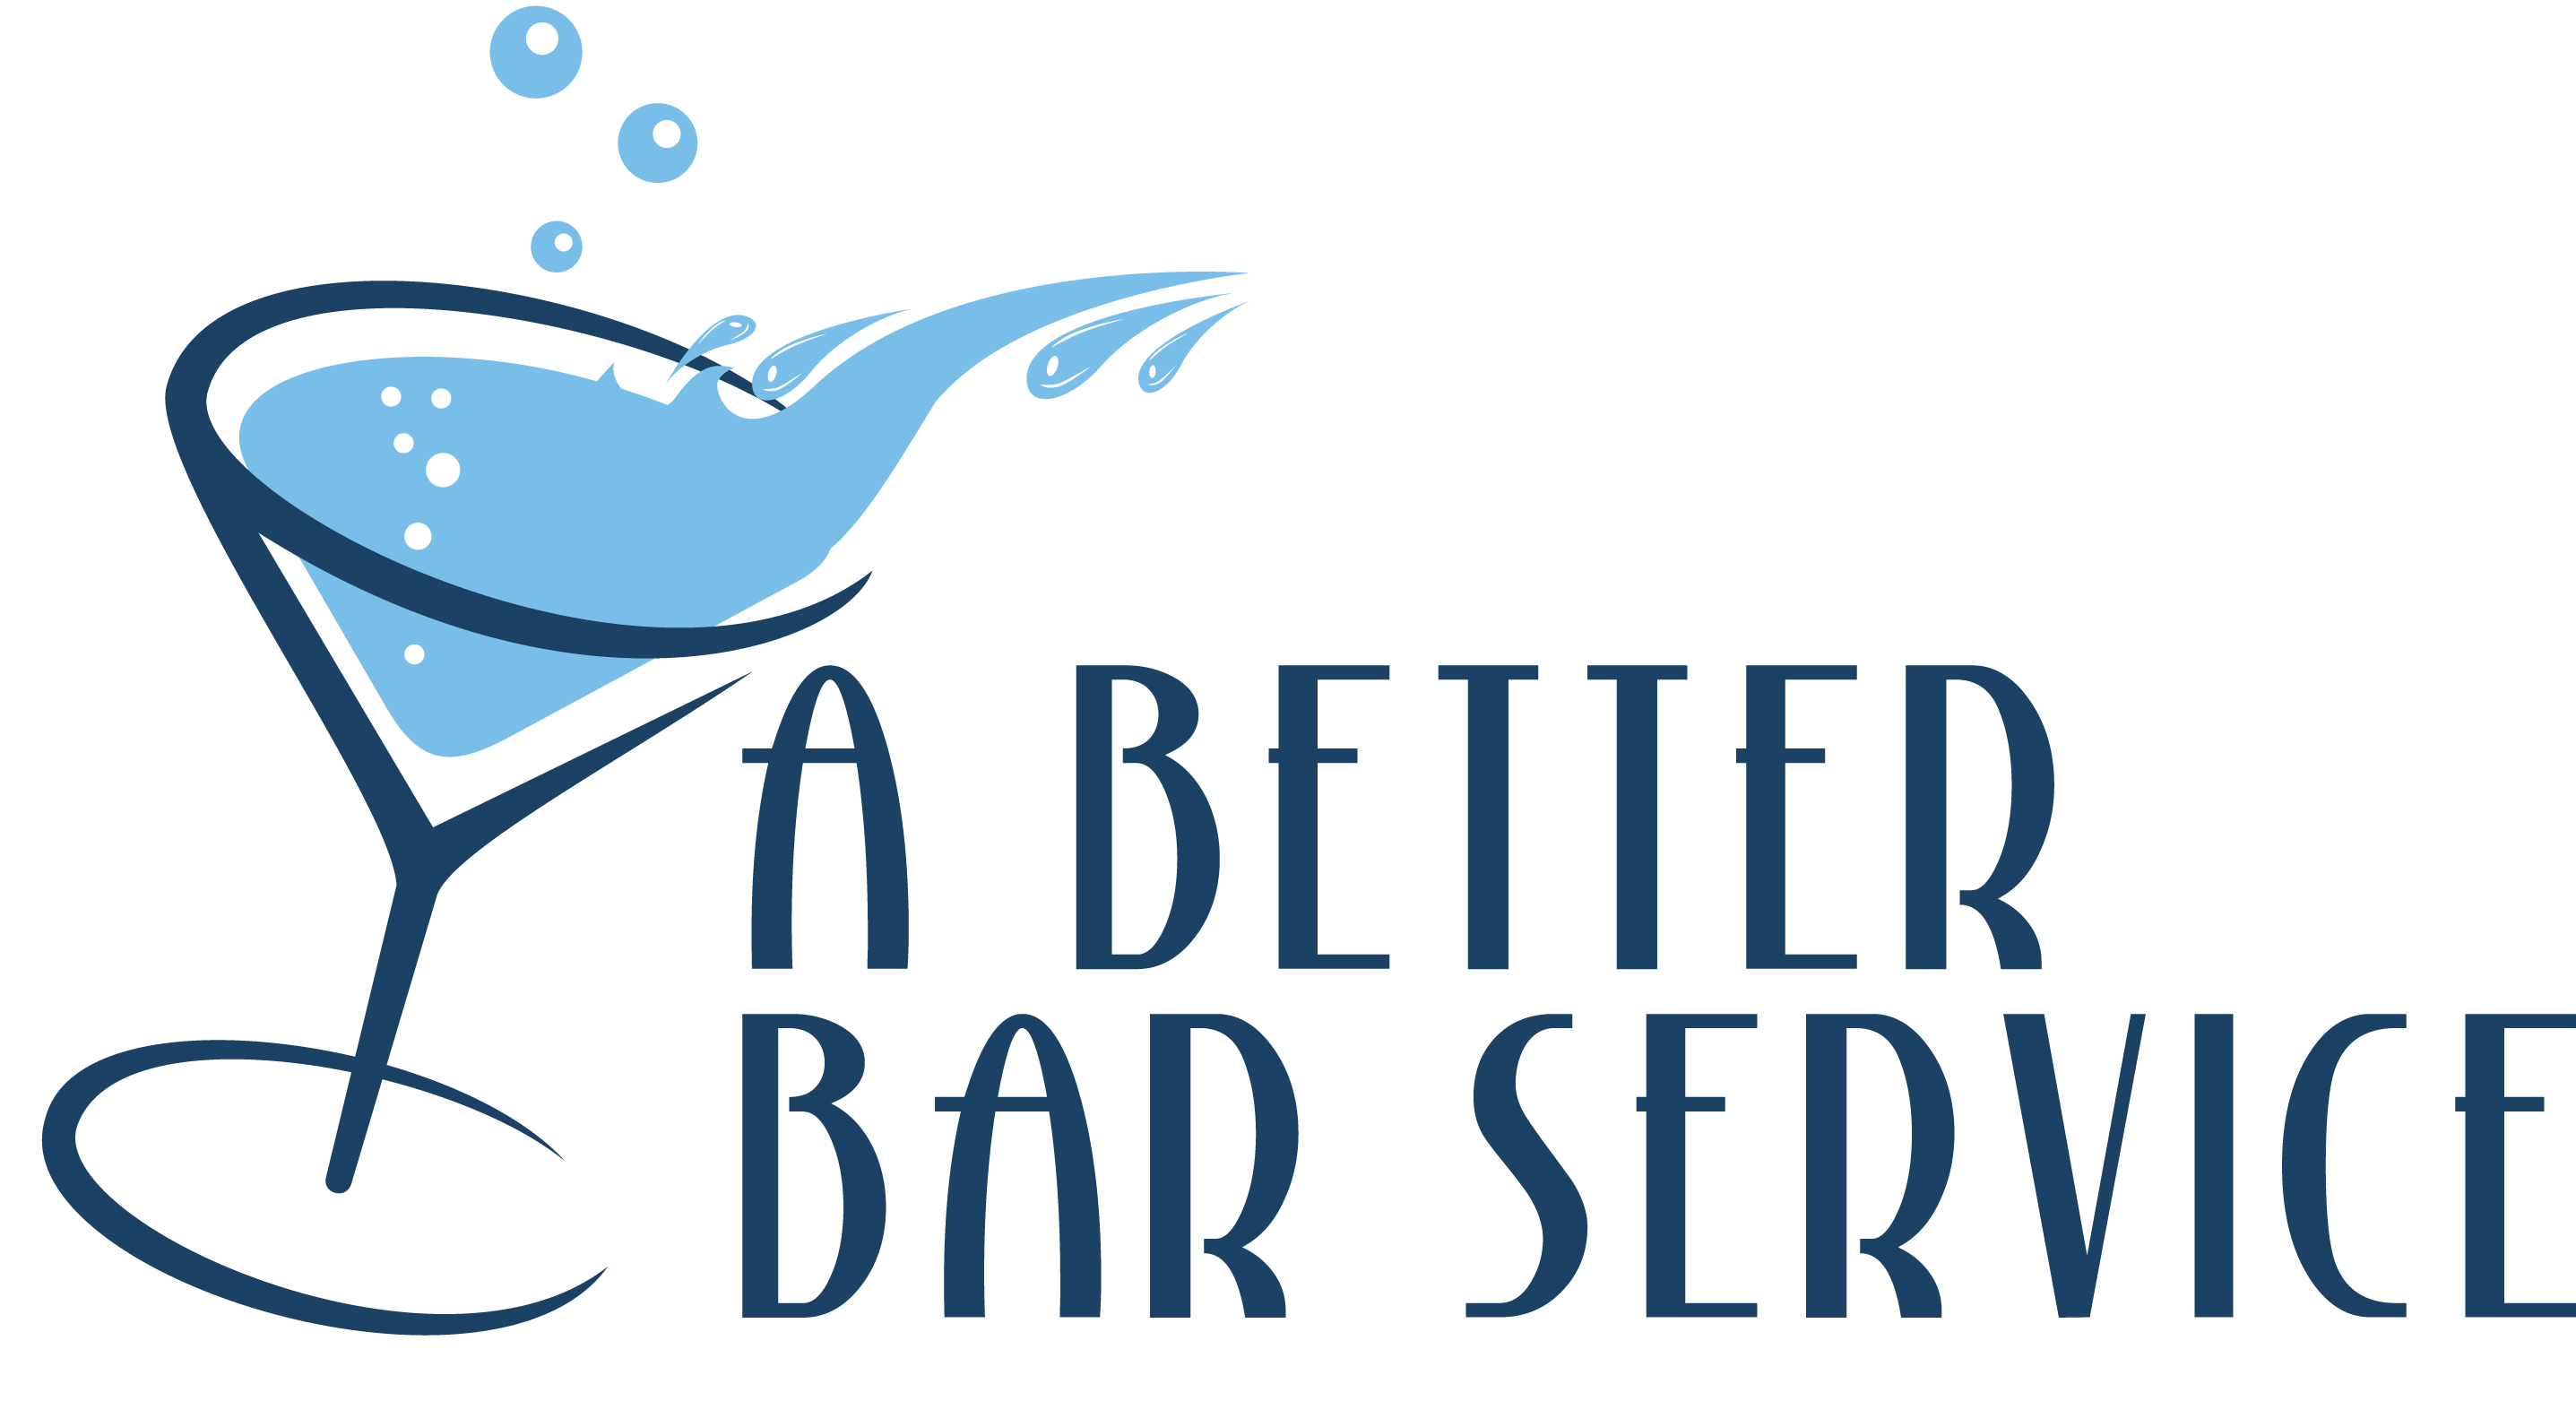 jpg royalty free download A better service abslogozip. Bar vector logo